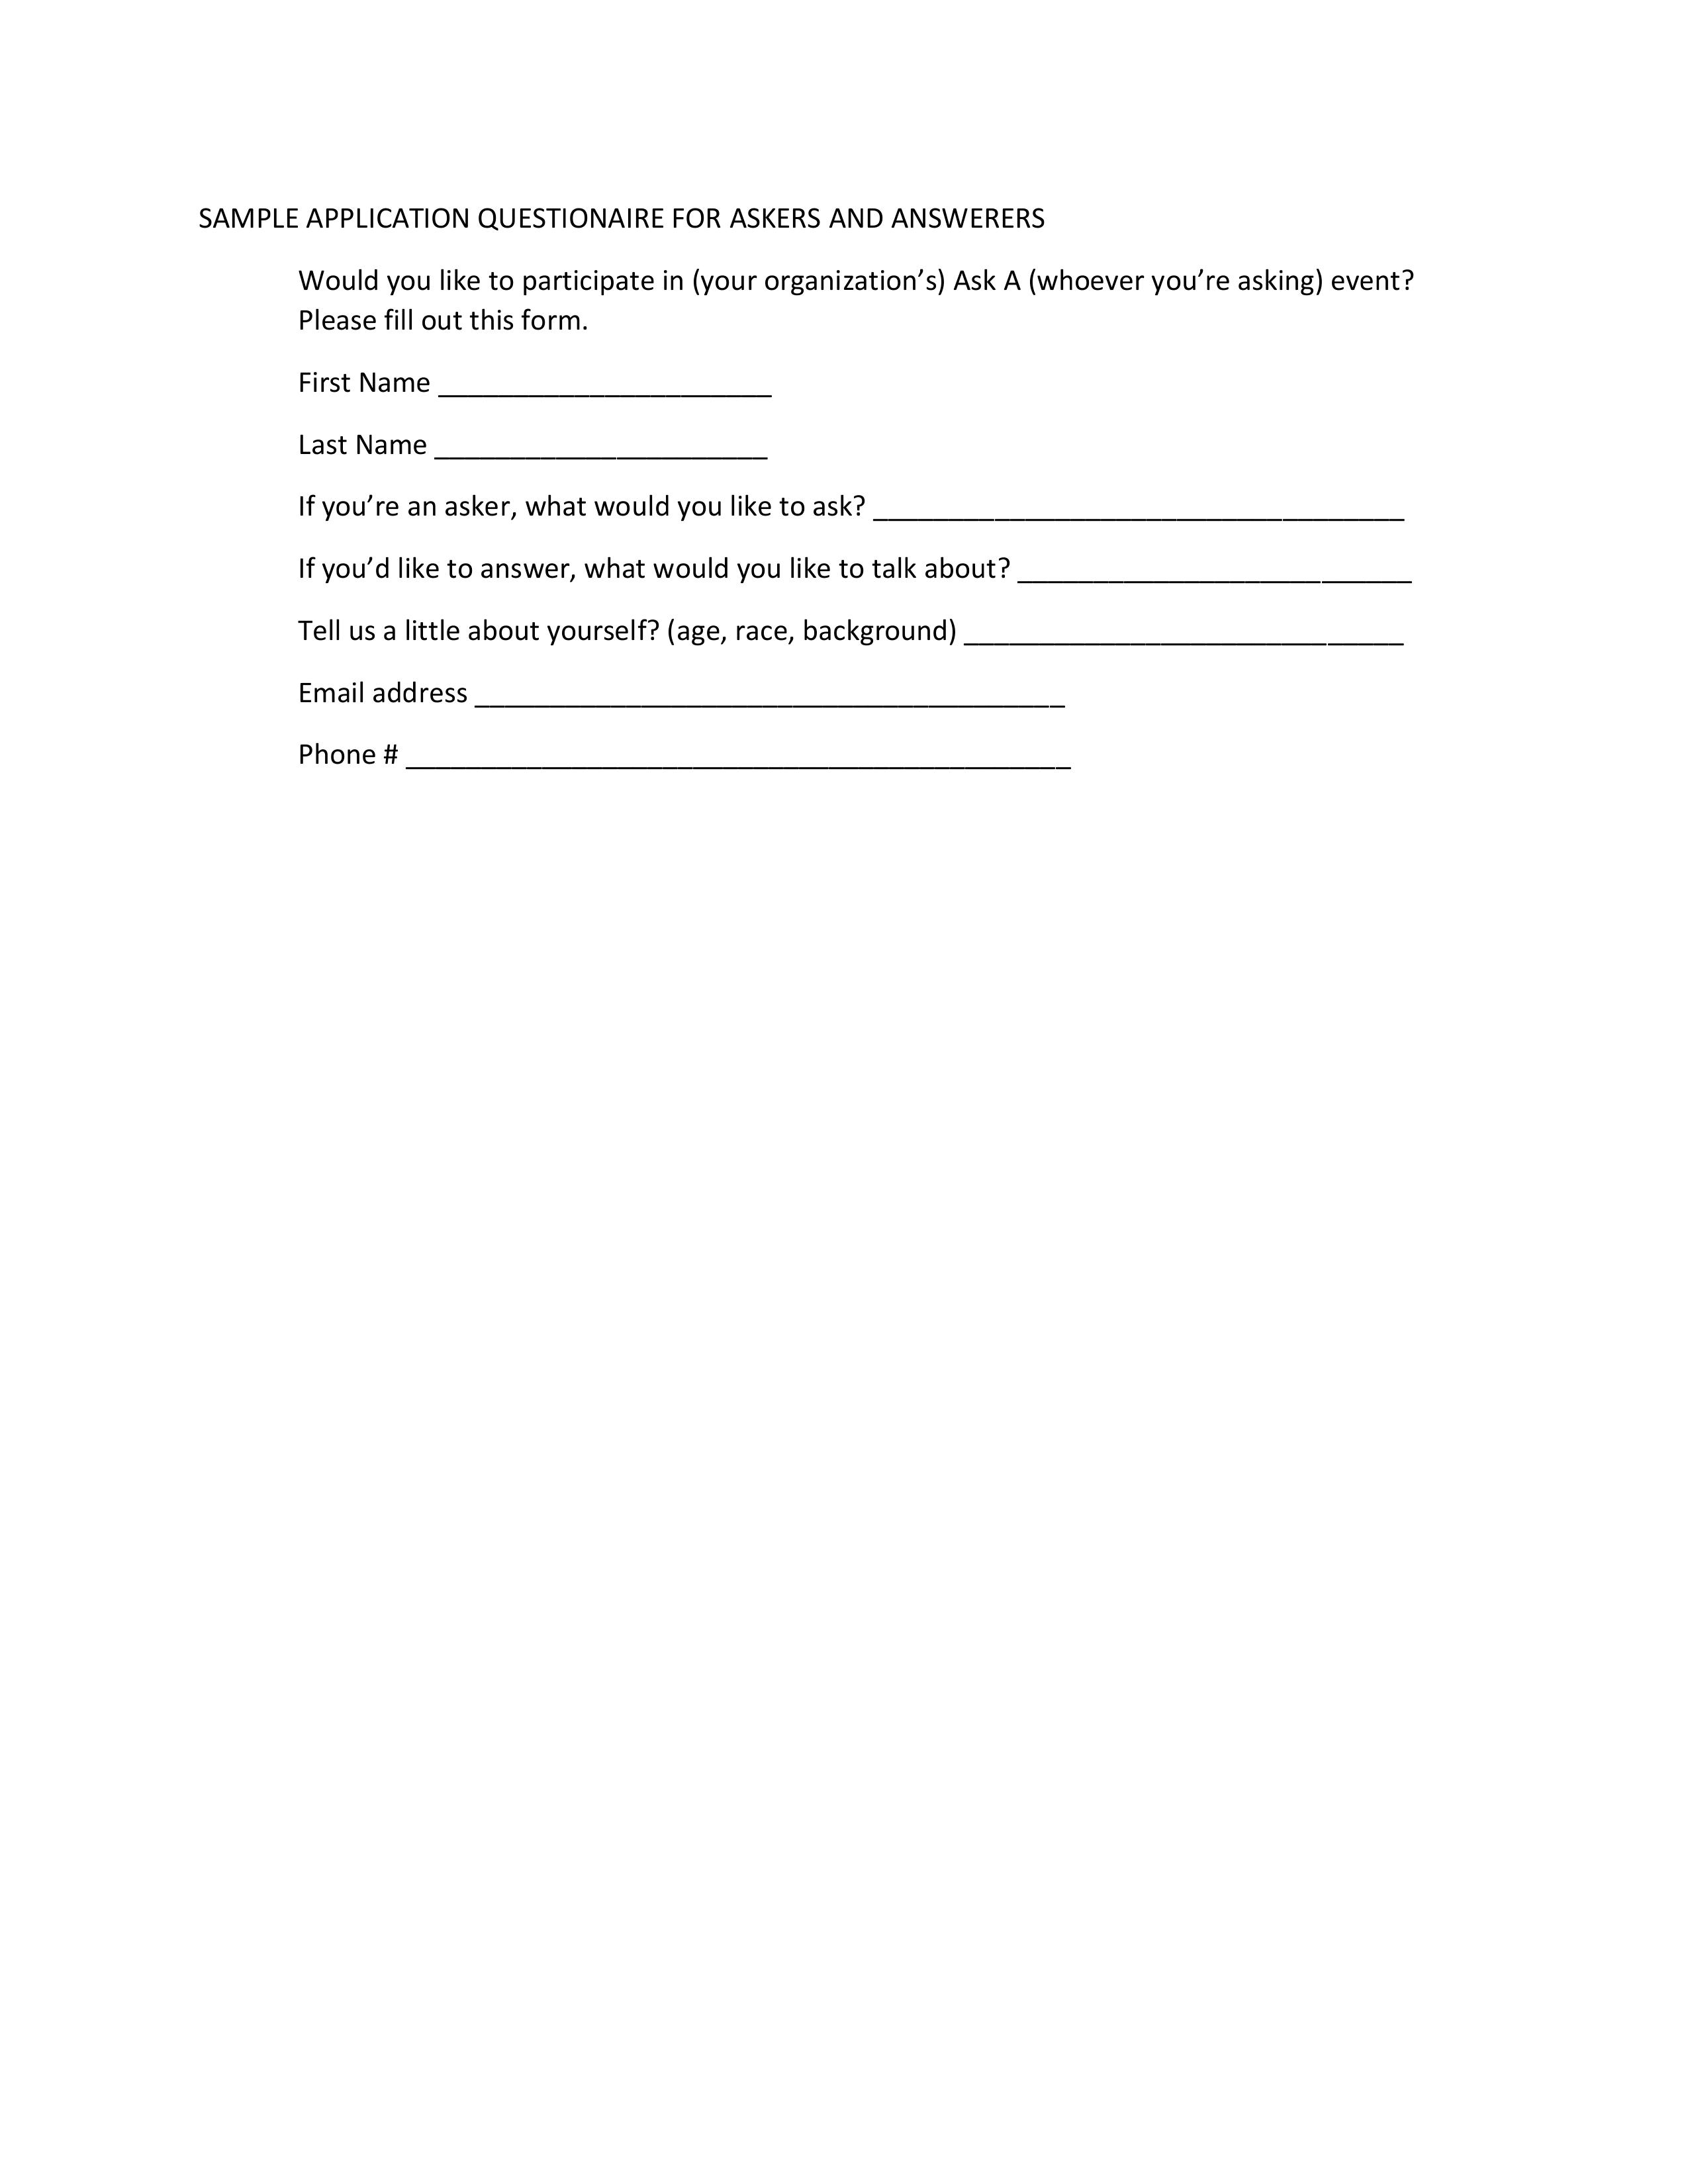 Sample Questionaire